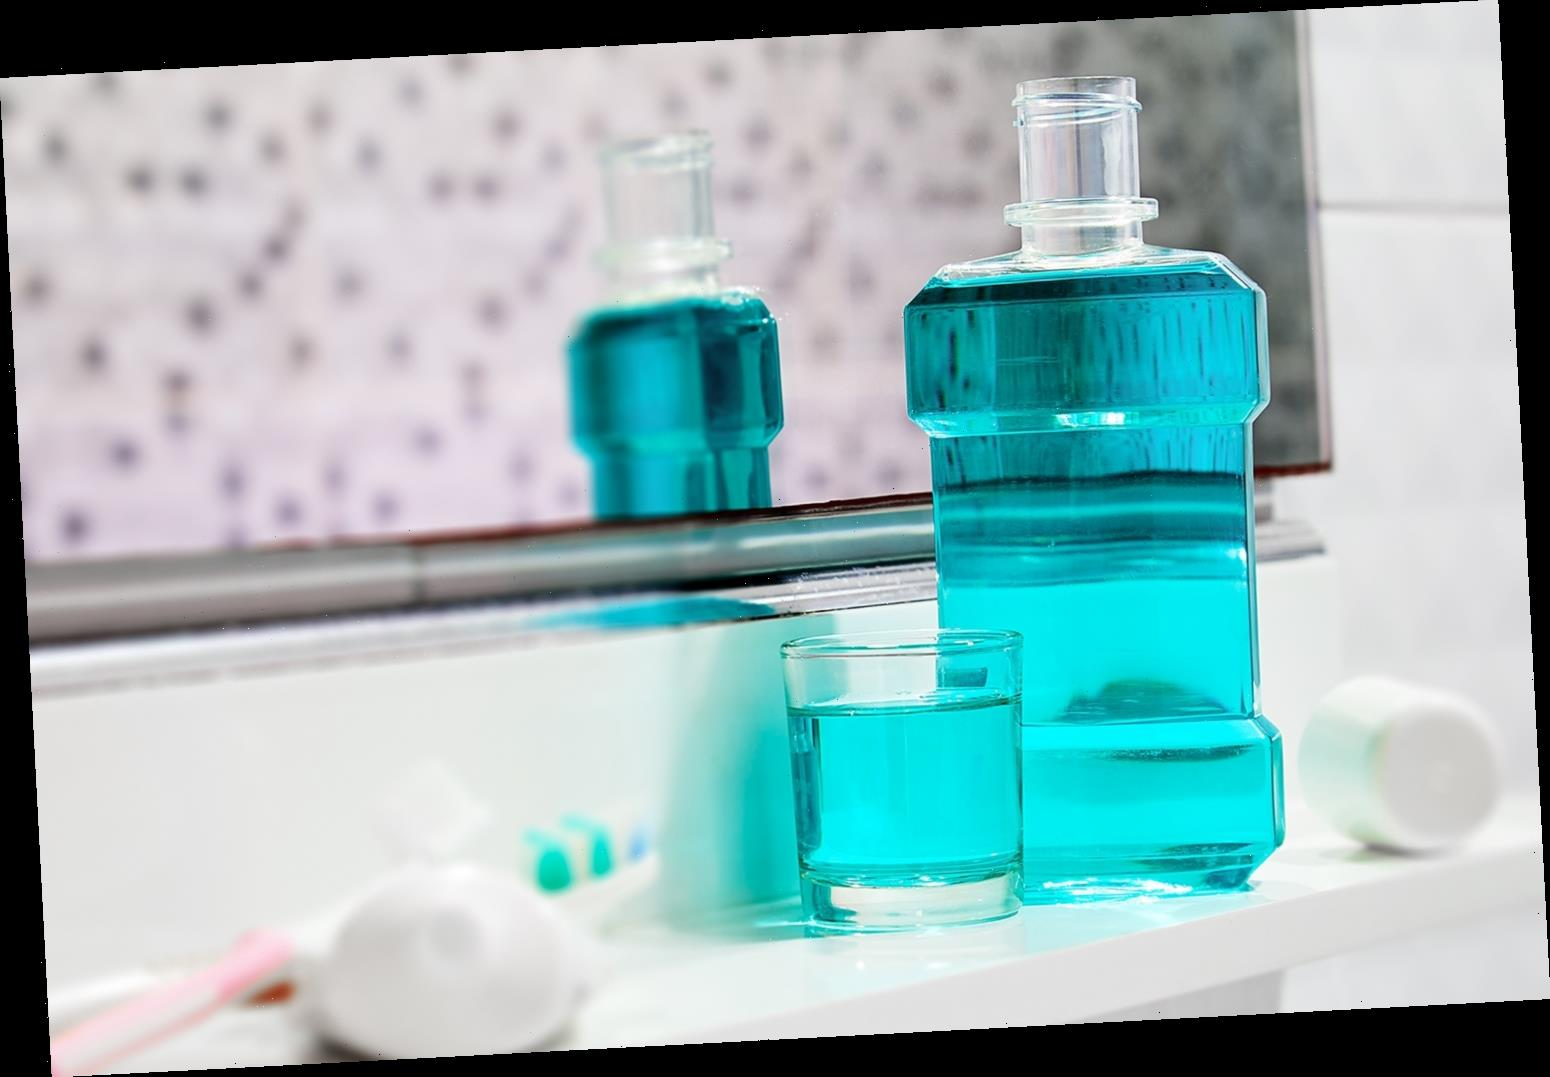 Experts Clear Up Misinformation That Mouthwash Can 'Inactivate' Coronavirus